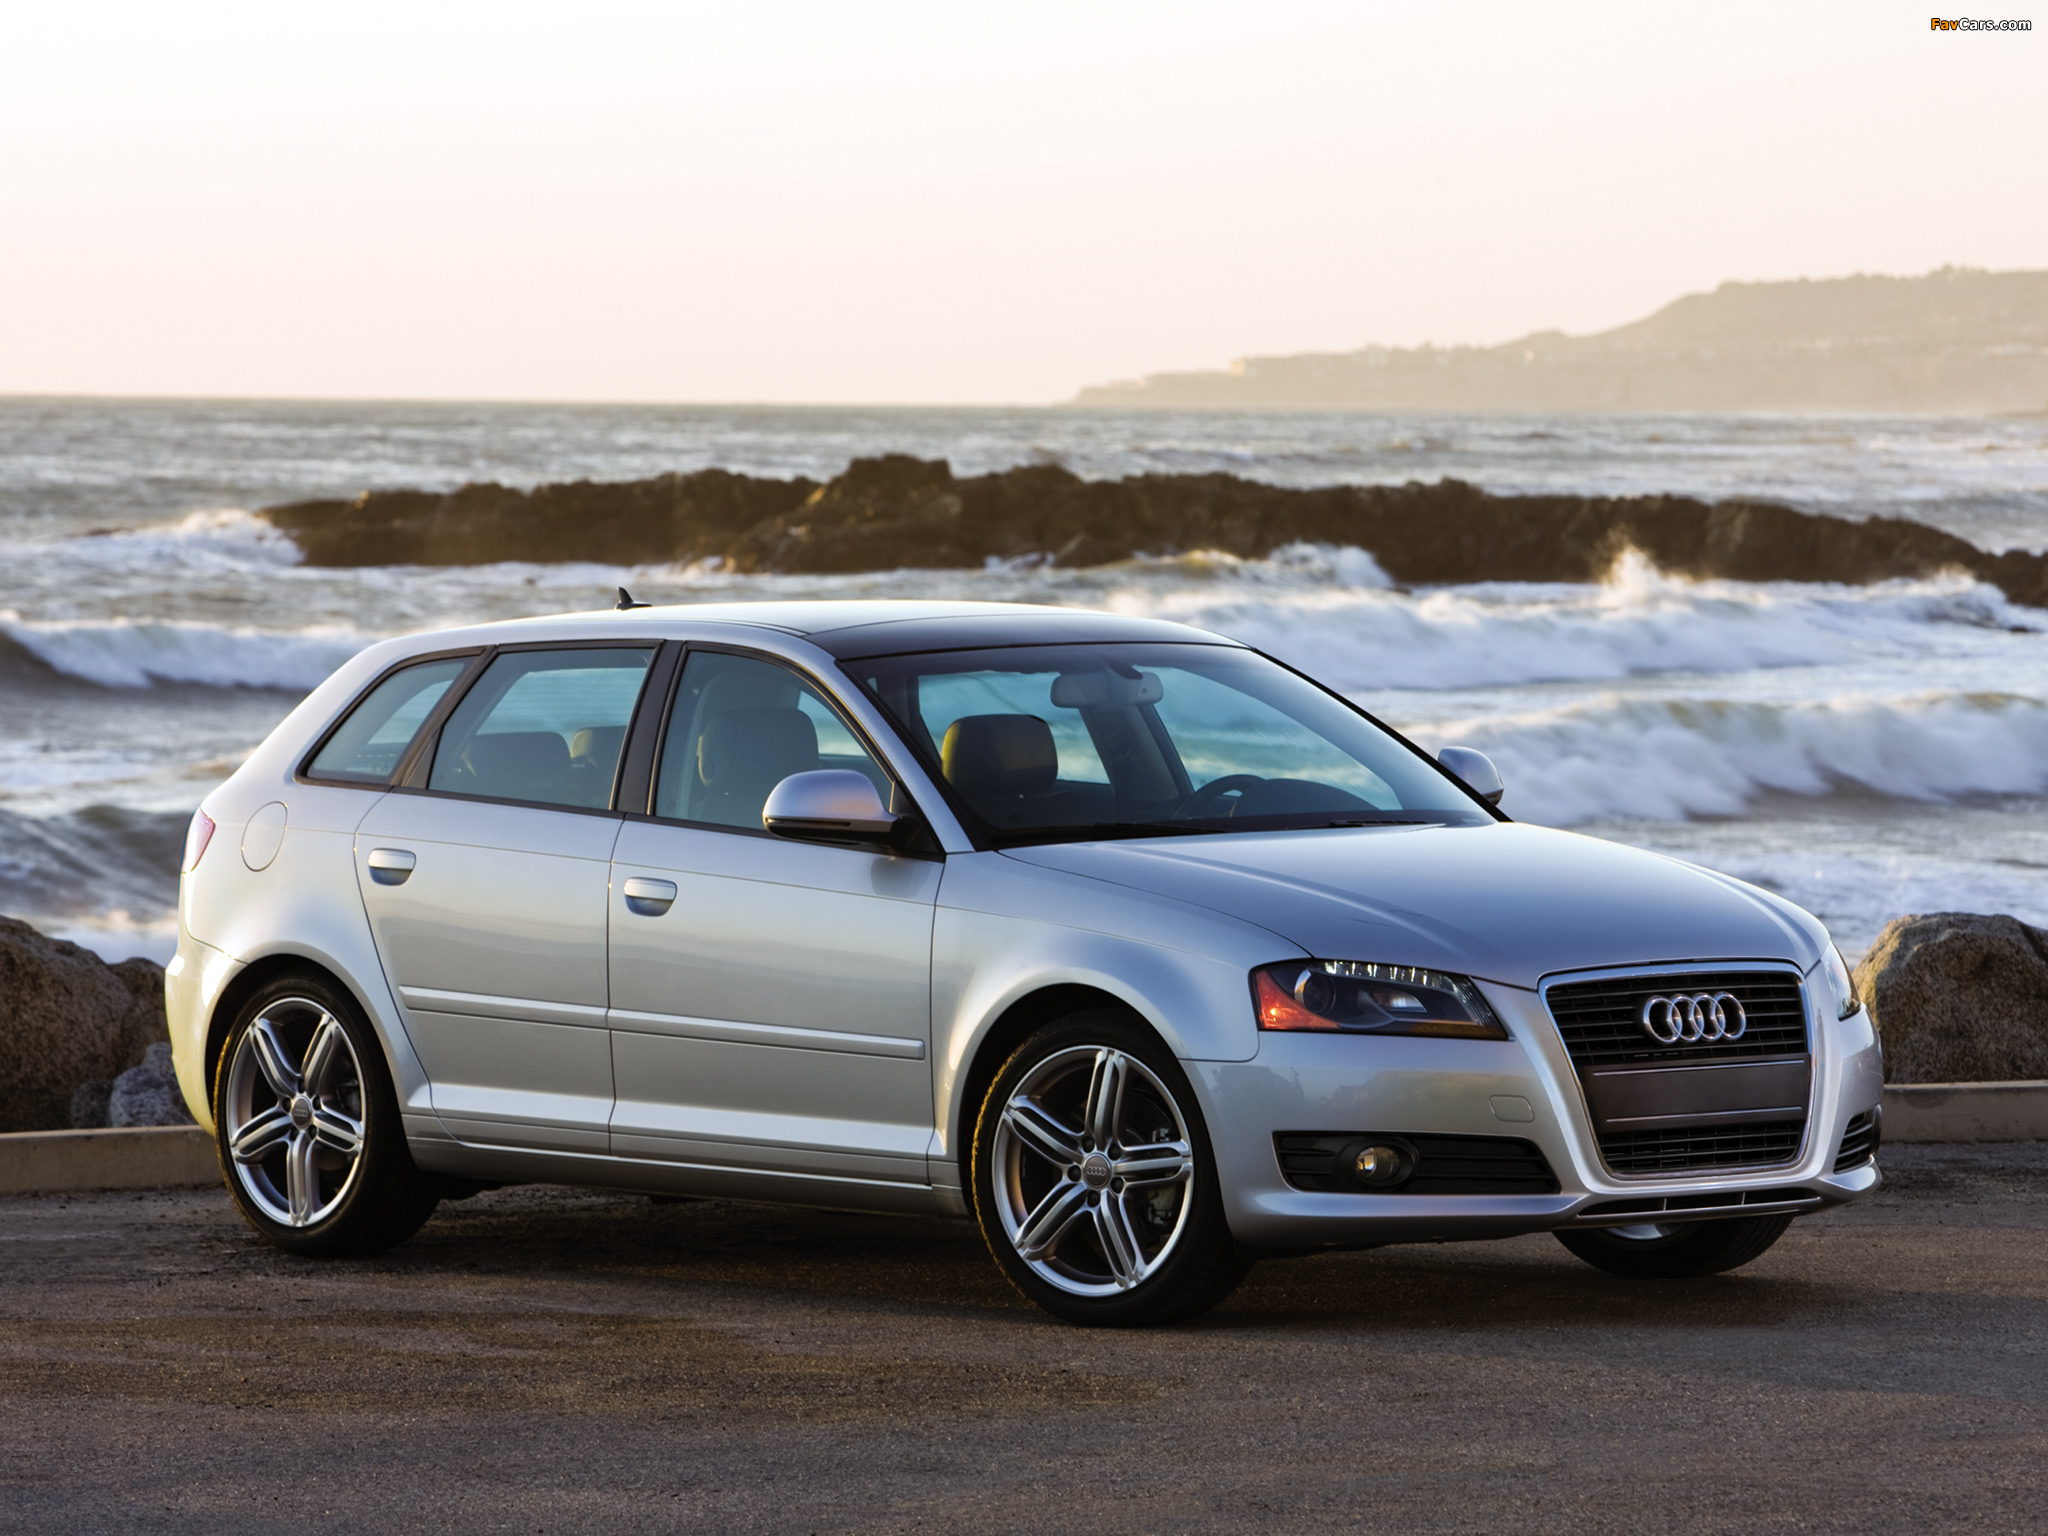 audi a3 sportback 2 0t us spec 8pa 2008 2010 wallpapers 2048x1536. Black Bedroom Furniture Sets. Home Design Ideas